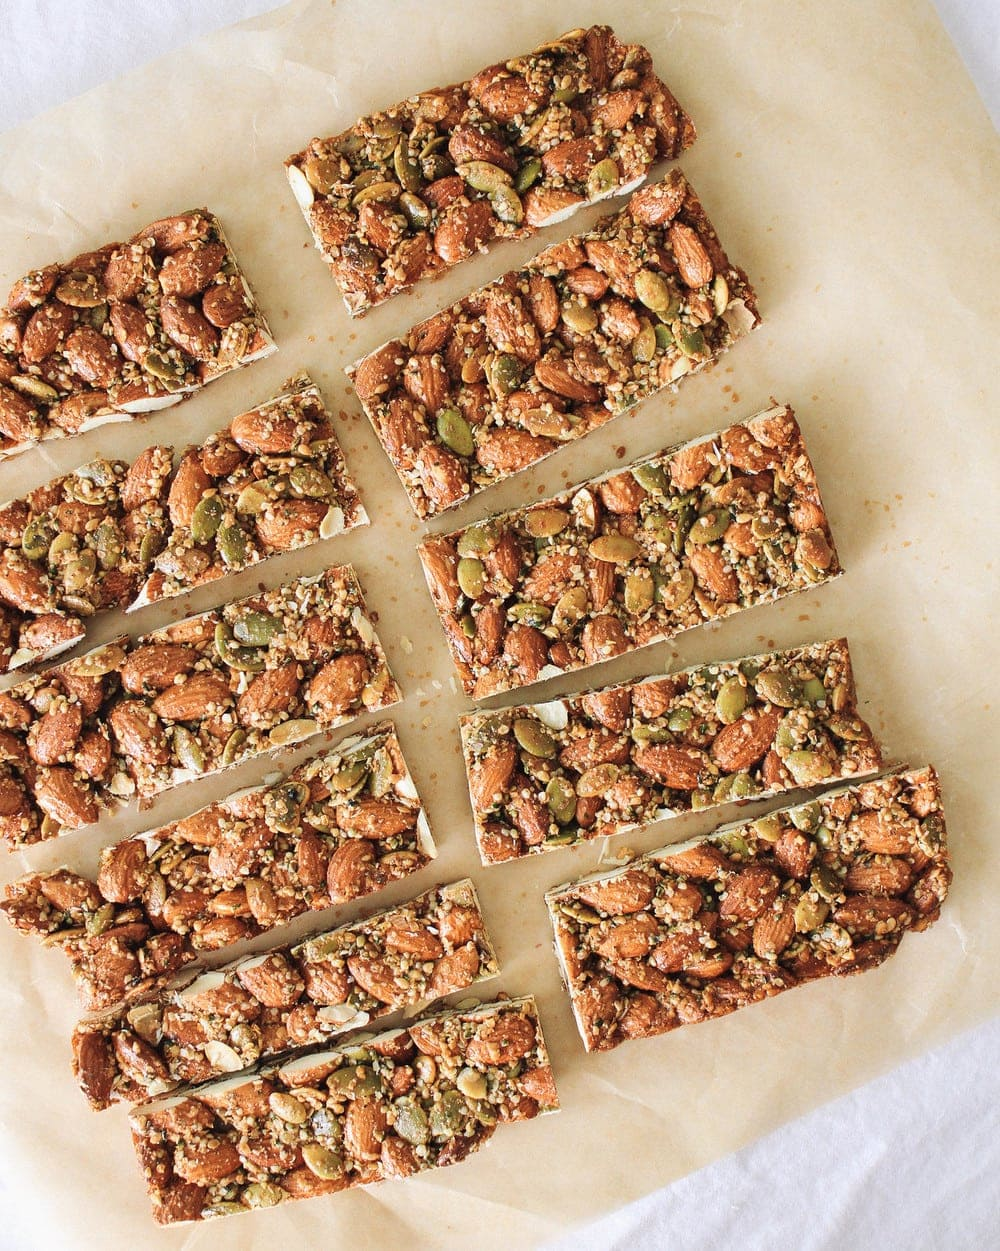 spicy nut and seed bar sliced on a piece of parchment paper